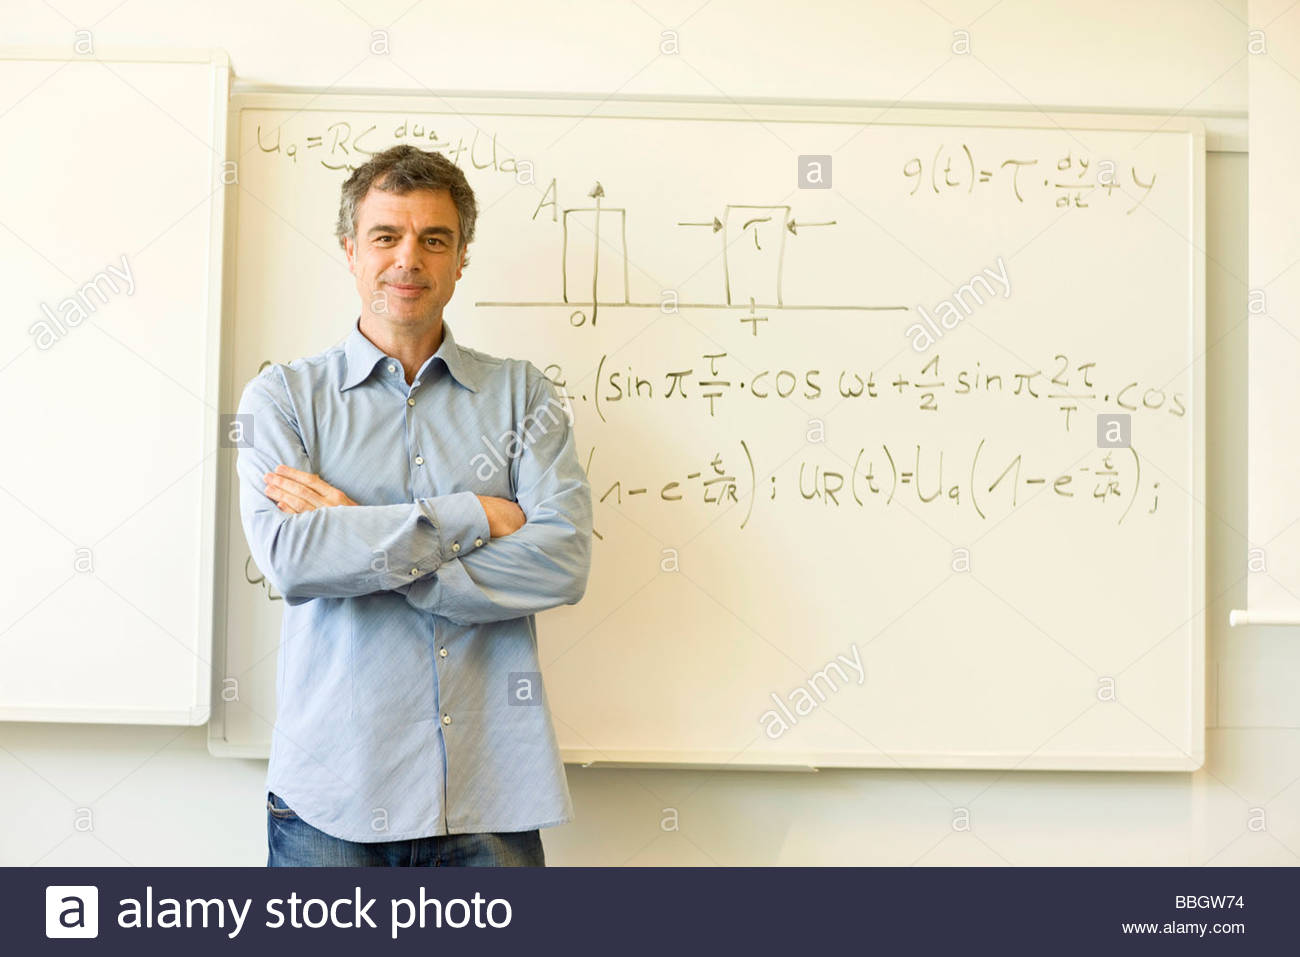 Portrait male teacher smiling before equation written on board - Stock Image